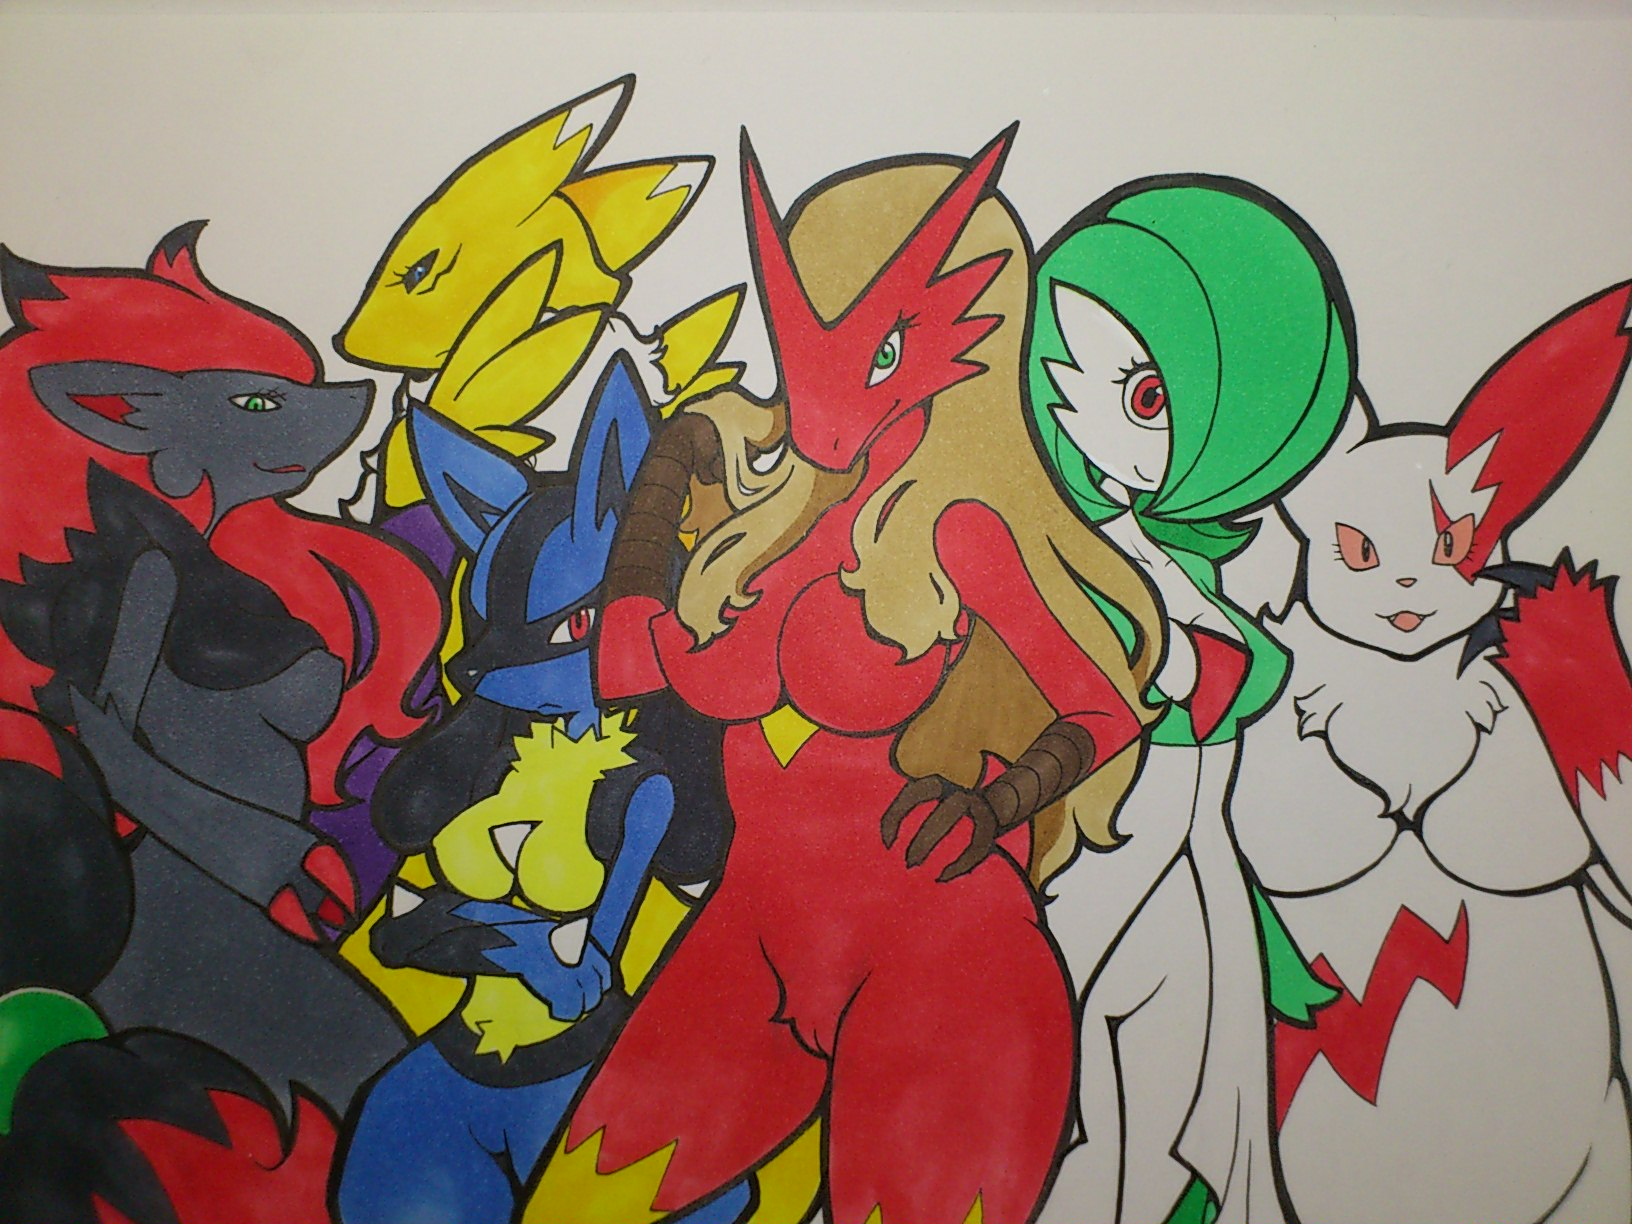 e621 anthro anthrofied avian bird black_sclera blaziken blue_eyes blue_fur breasts canine claws crossed_arms crossover digimon featureless_breasts female fox fur gardevoir green_eyes group hair hi_res humanoid kewon lucario mammal nintendo nipple_tuf5 pokémon pokémorph pussy red_eyes renamon slightly_chubby traditional_media_(artwork) video_games white_fur wide_hips yellow_fur zangoose zoroark